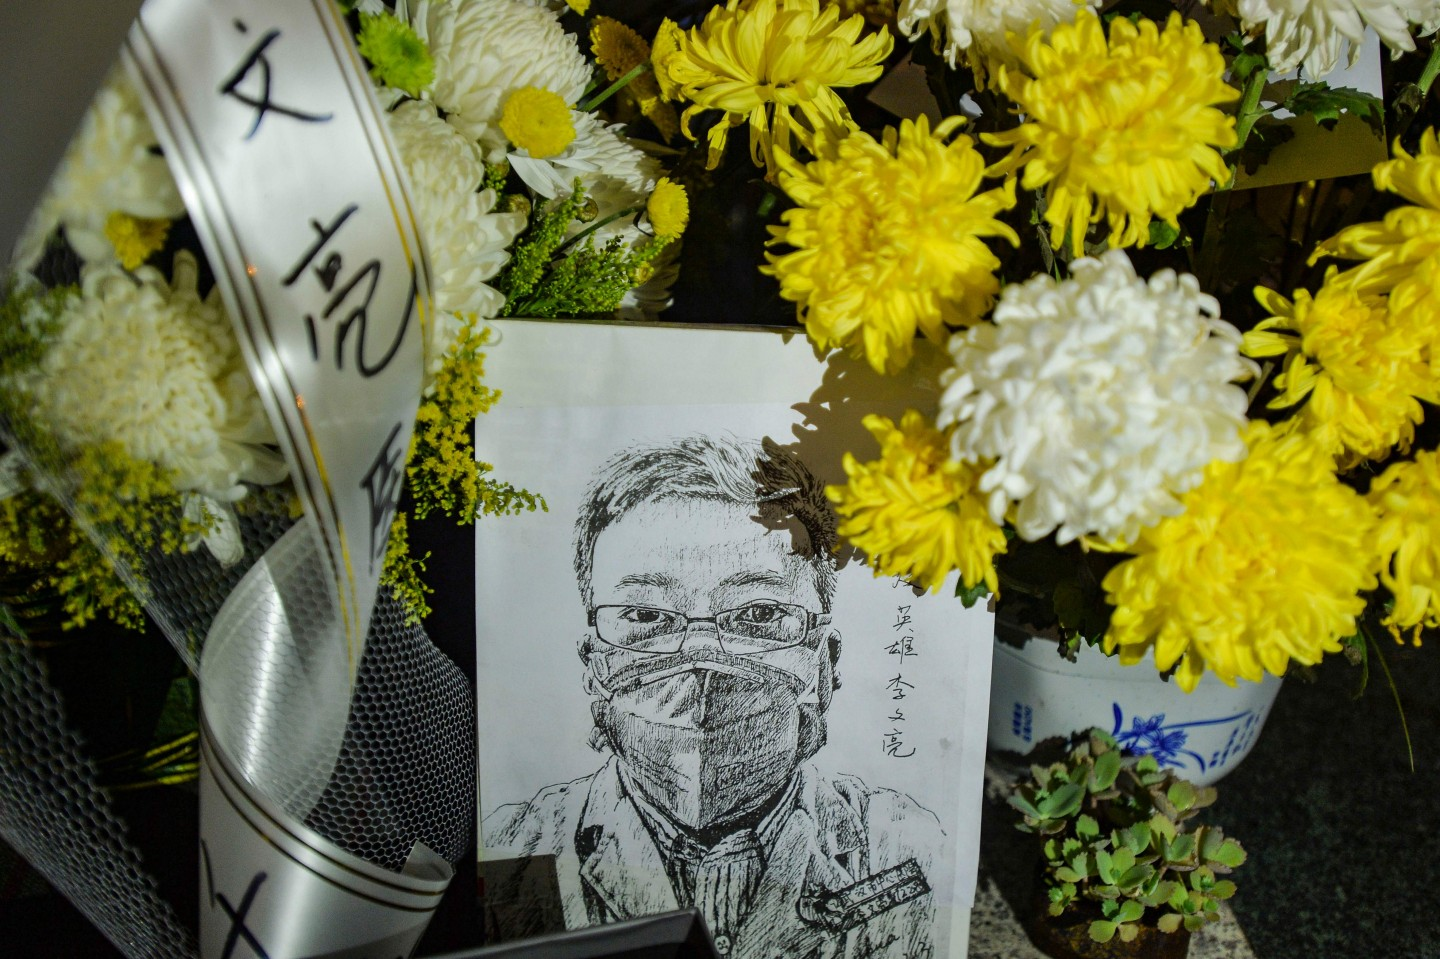 This photo taken on 7 February 2020 shows a photo of the late ophthalmologist Li Wenliang with flower bouquets at the Houhu Branch of Wuhan Central Hospital. (STR/AFP)